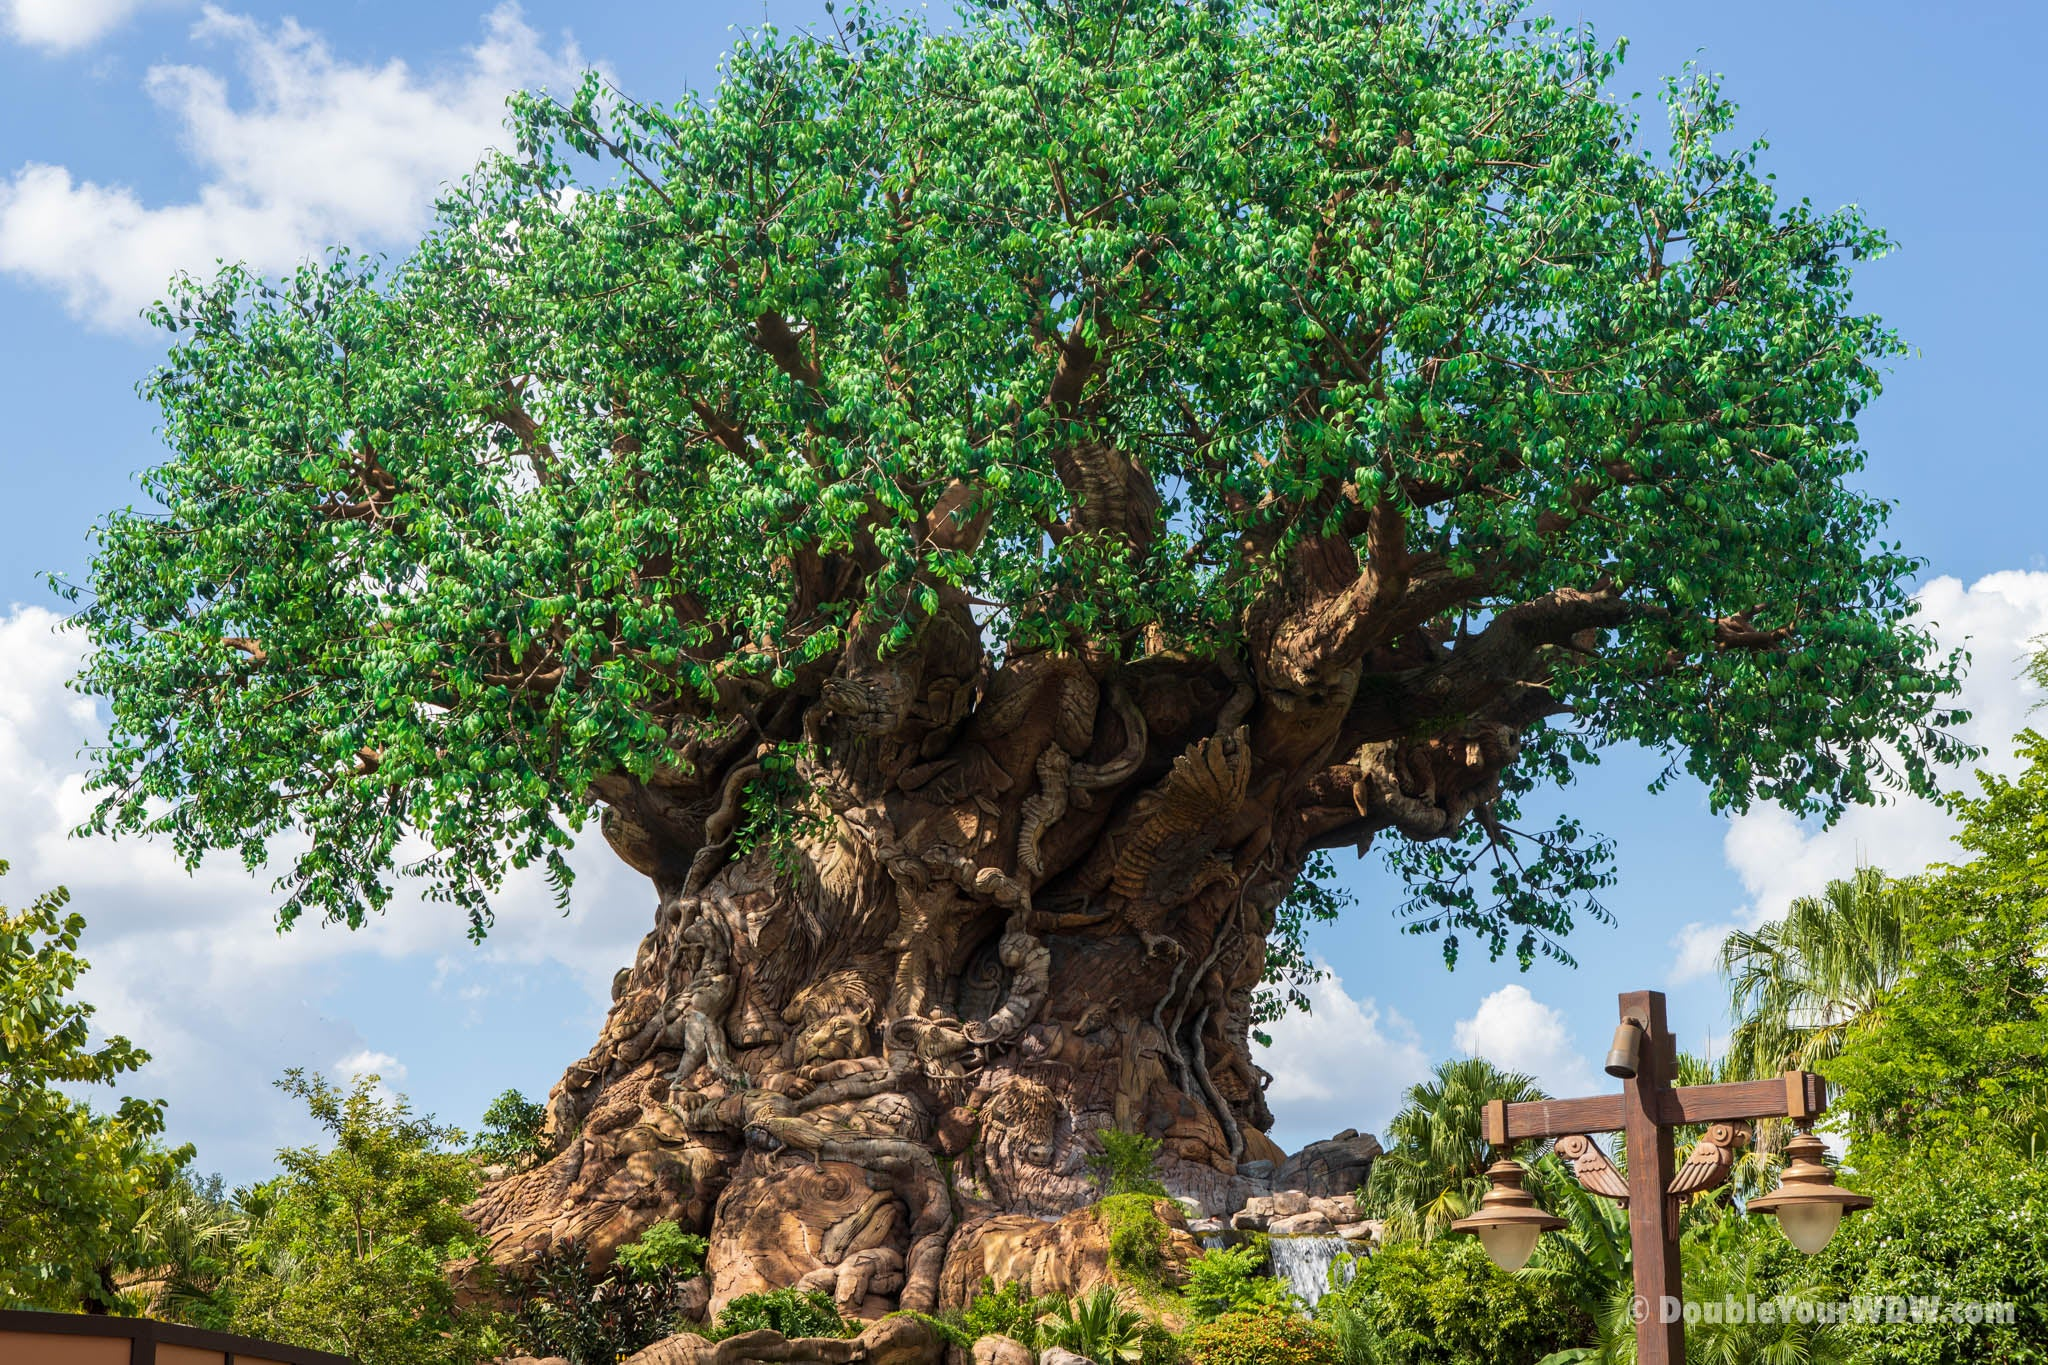 The Tree of Life Animal Kingdom